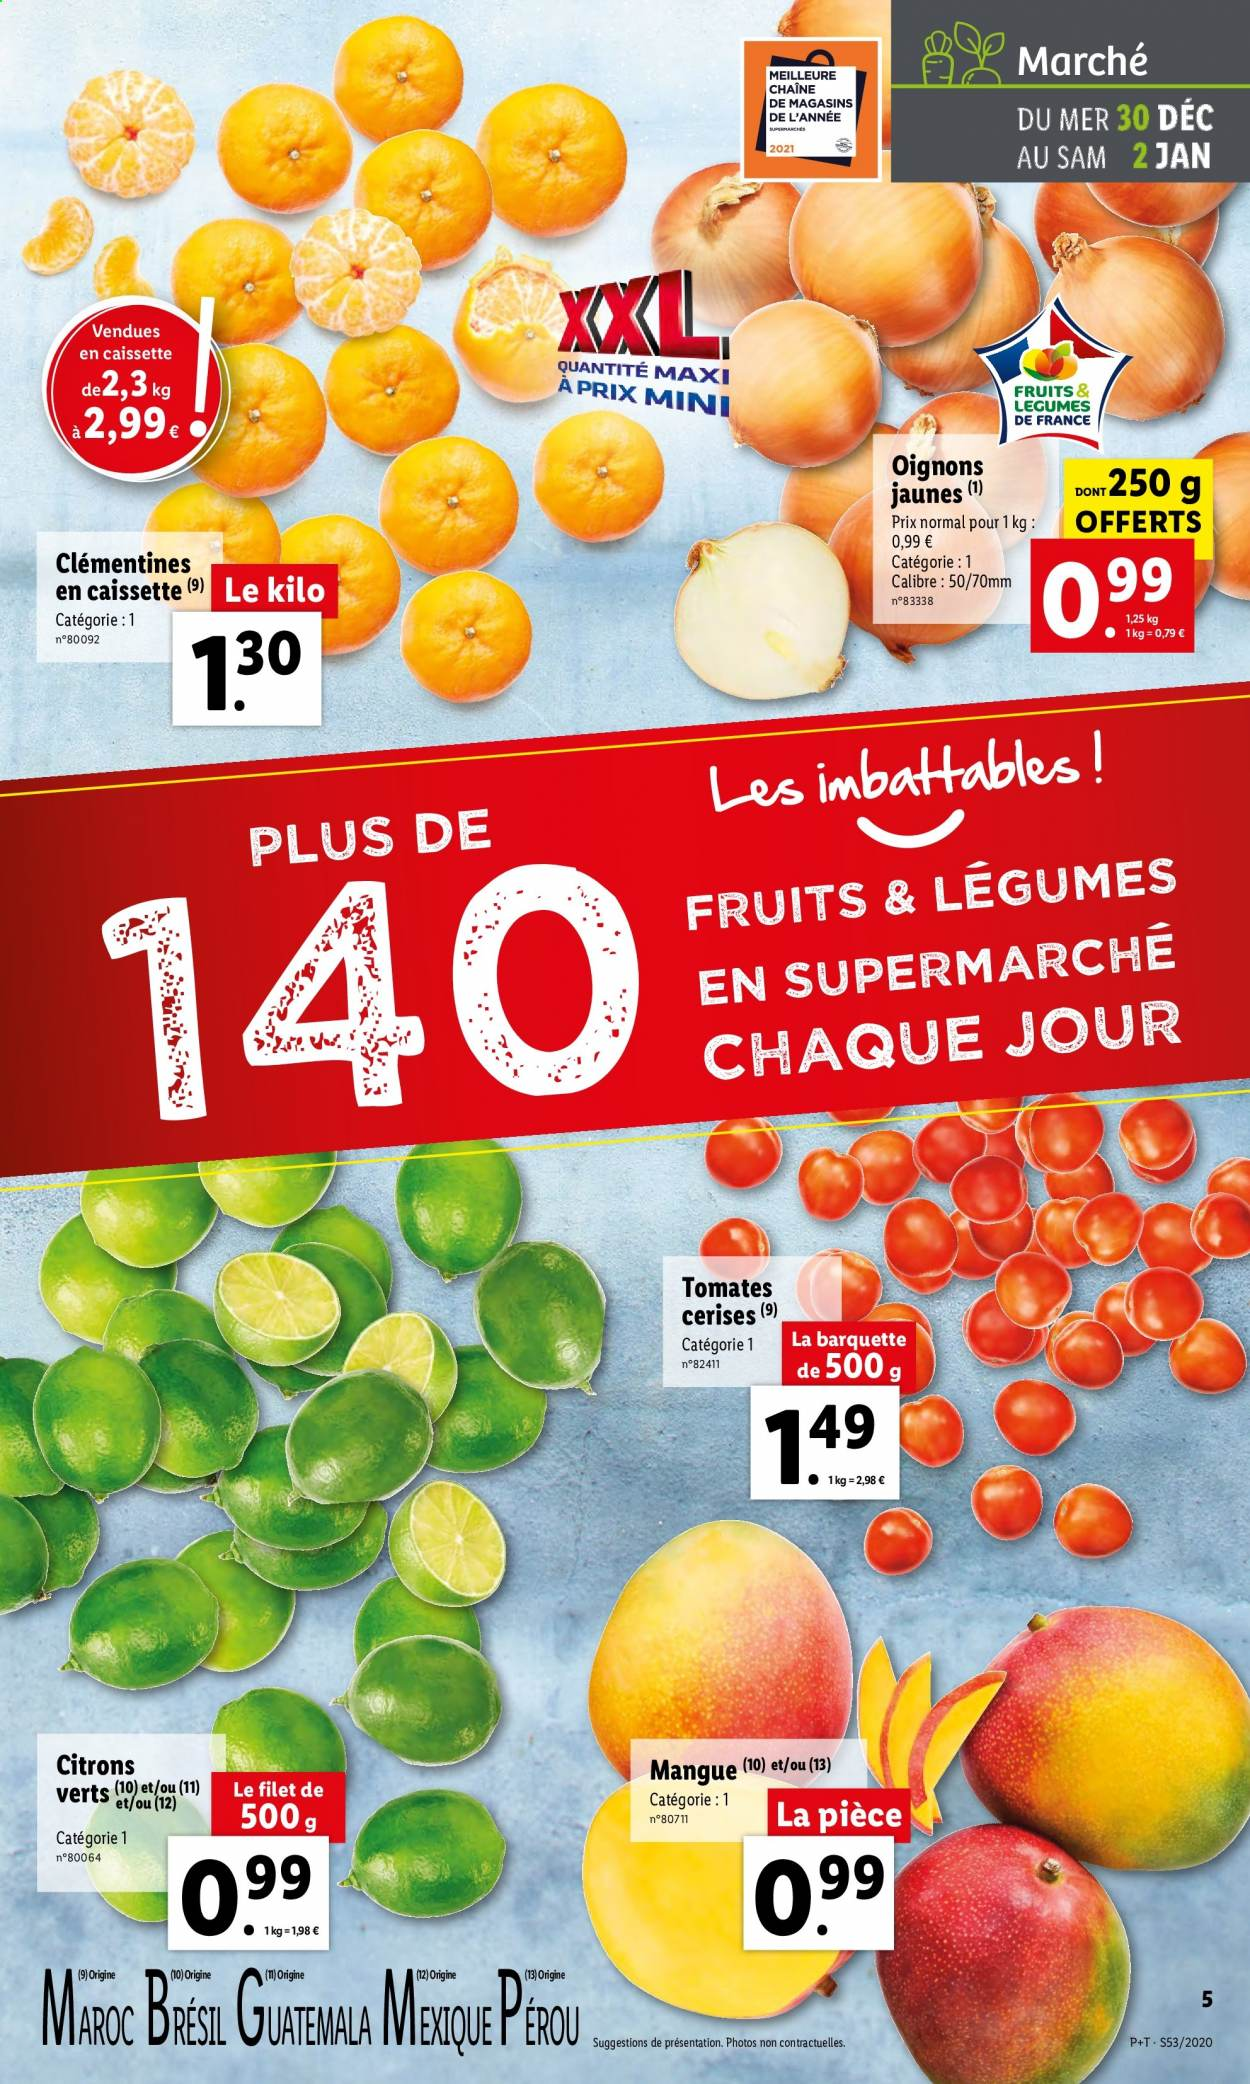 Catalogue Lidl - 30.12.2020 - 05.01.2021. Page 5.